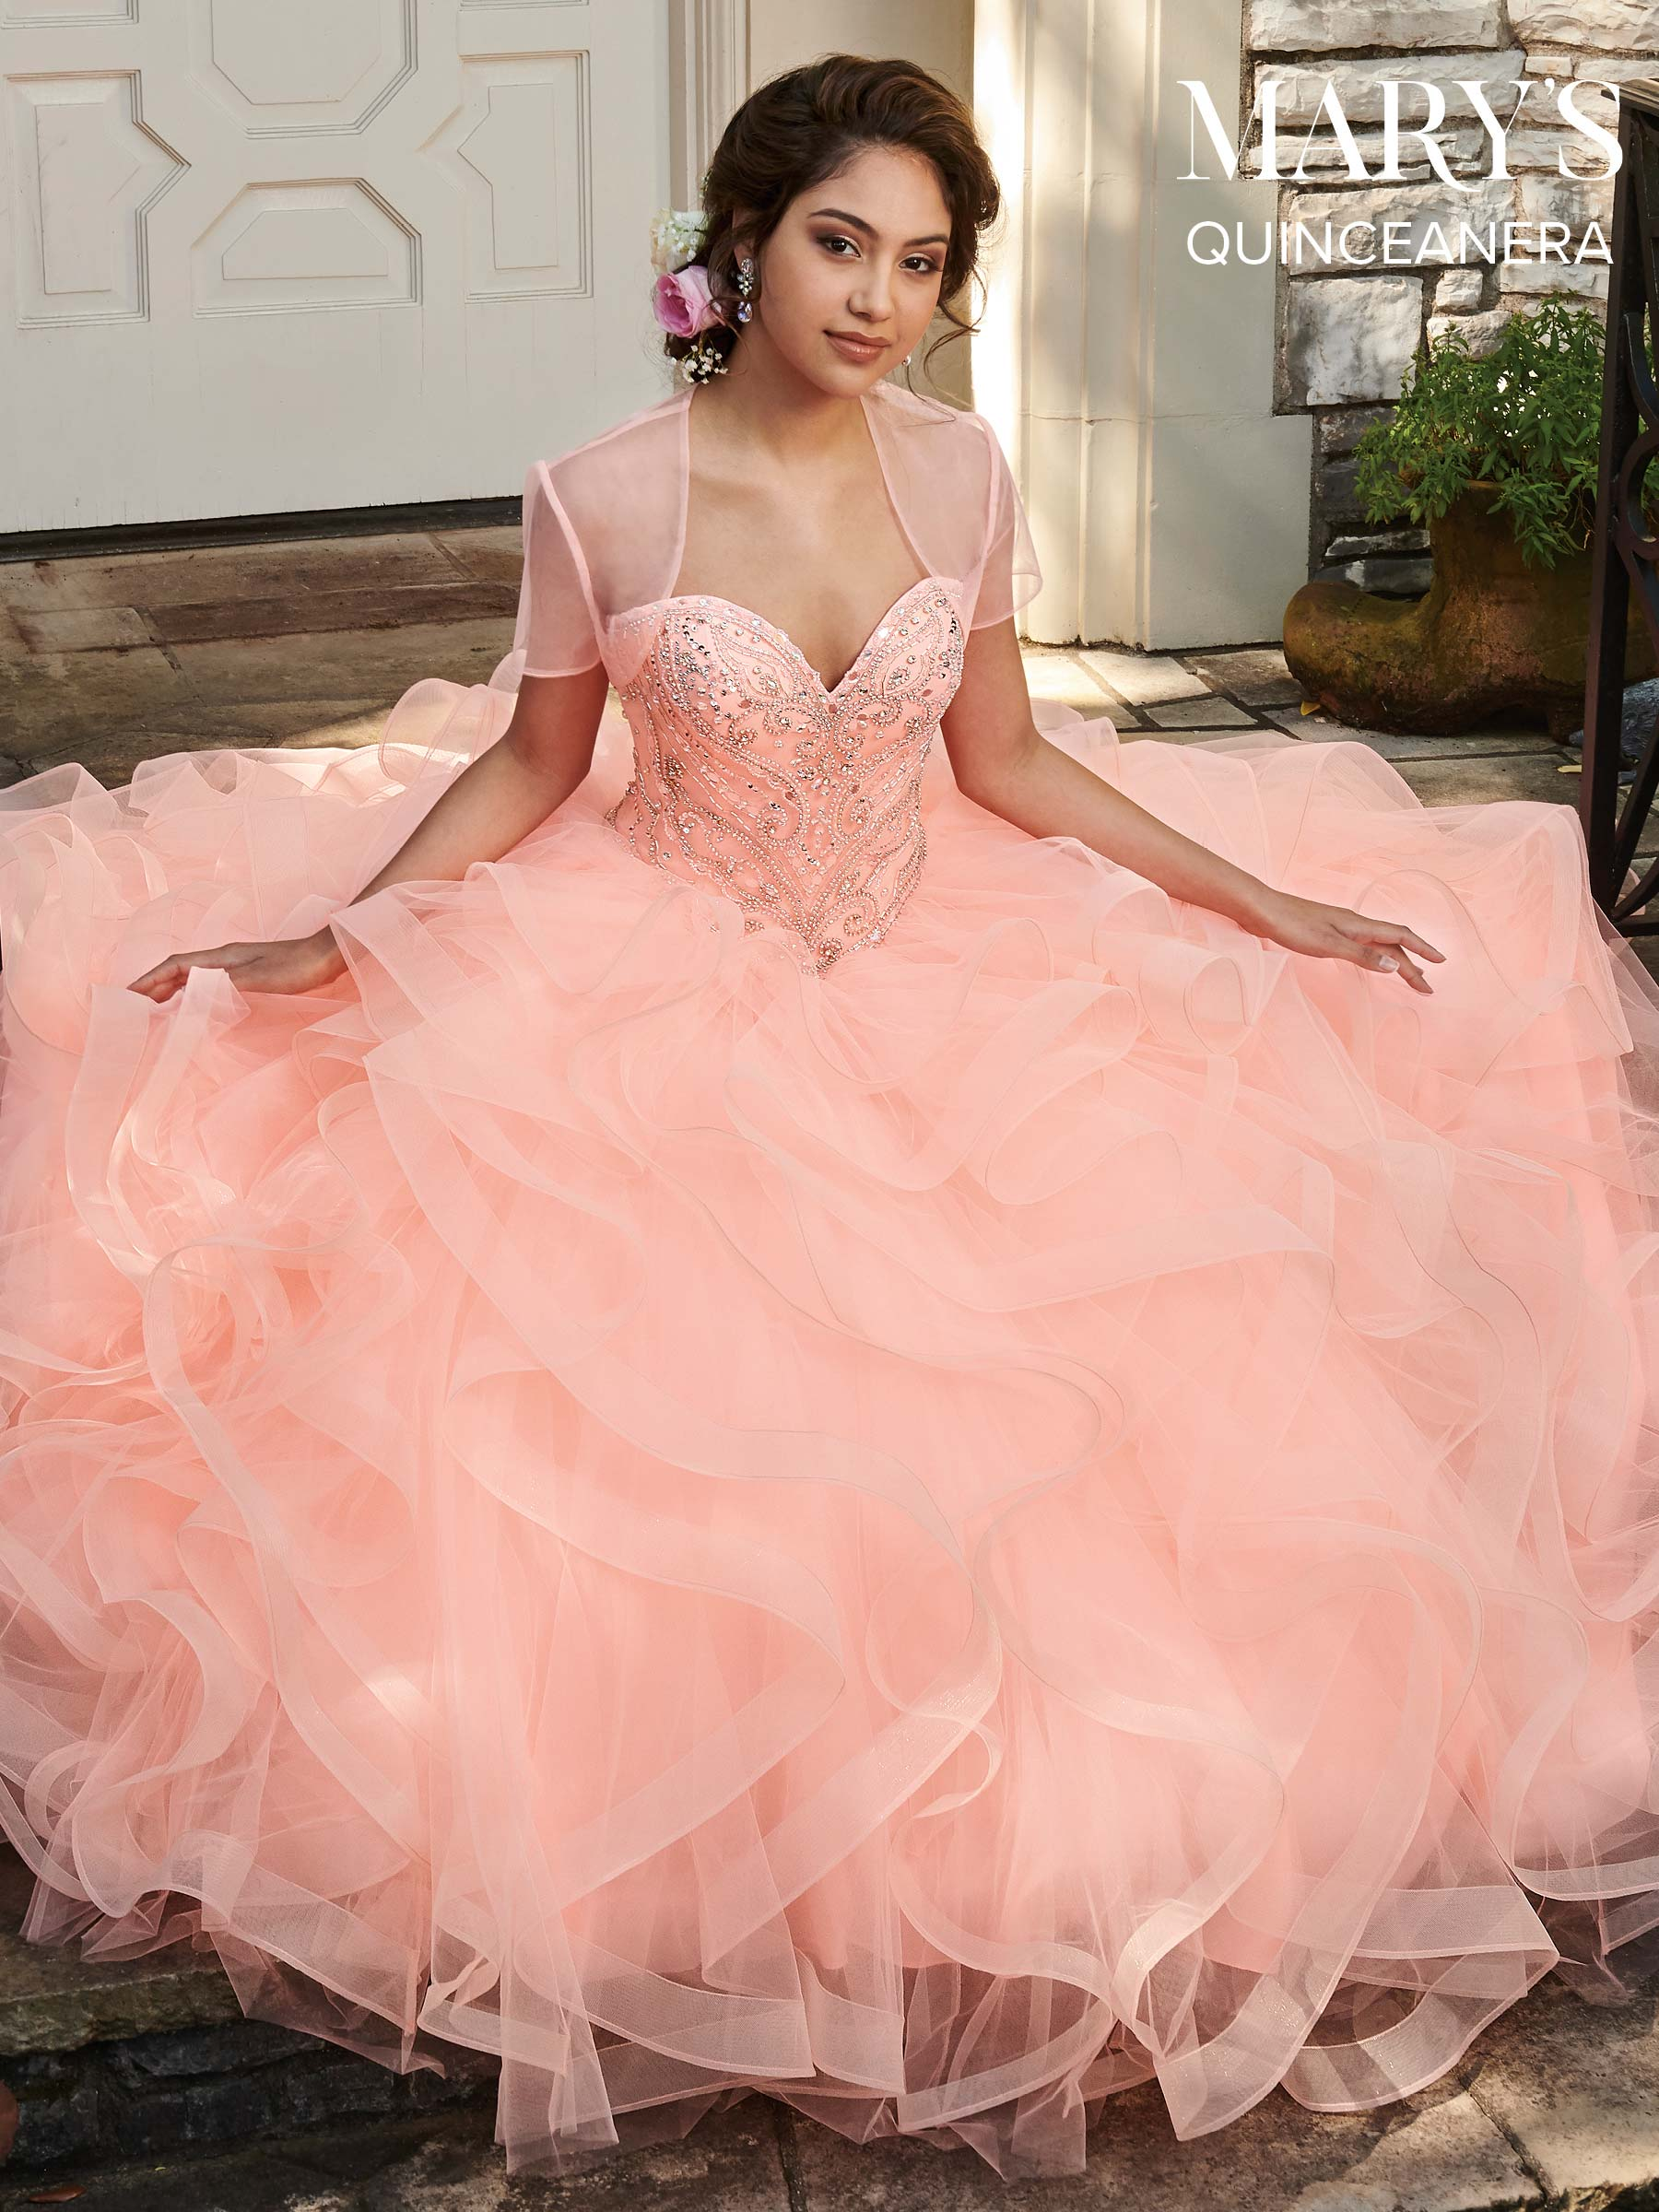 Marys Quinceanera Dresses | Mary's Quinceanera | Style - MQ2032